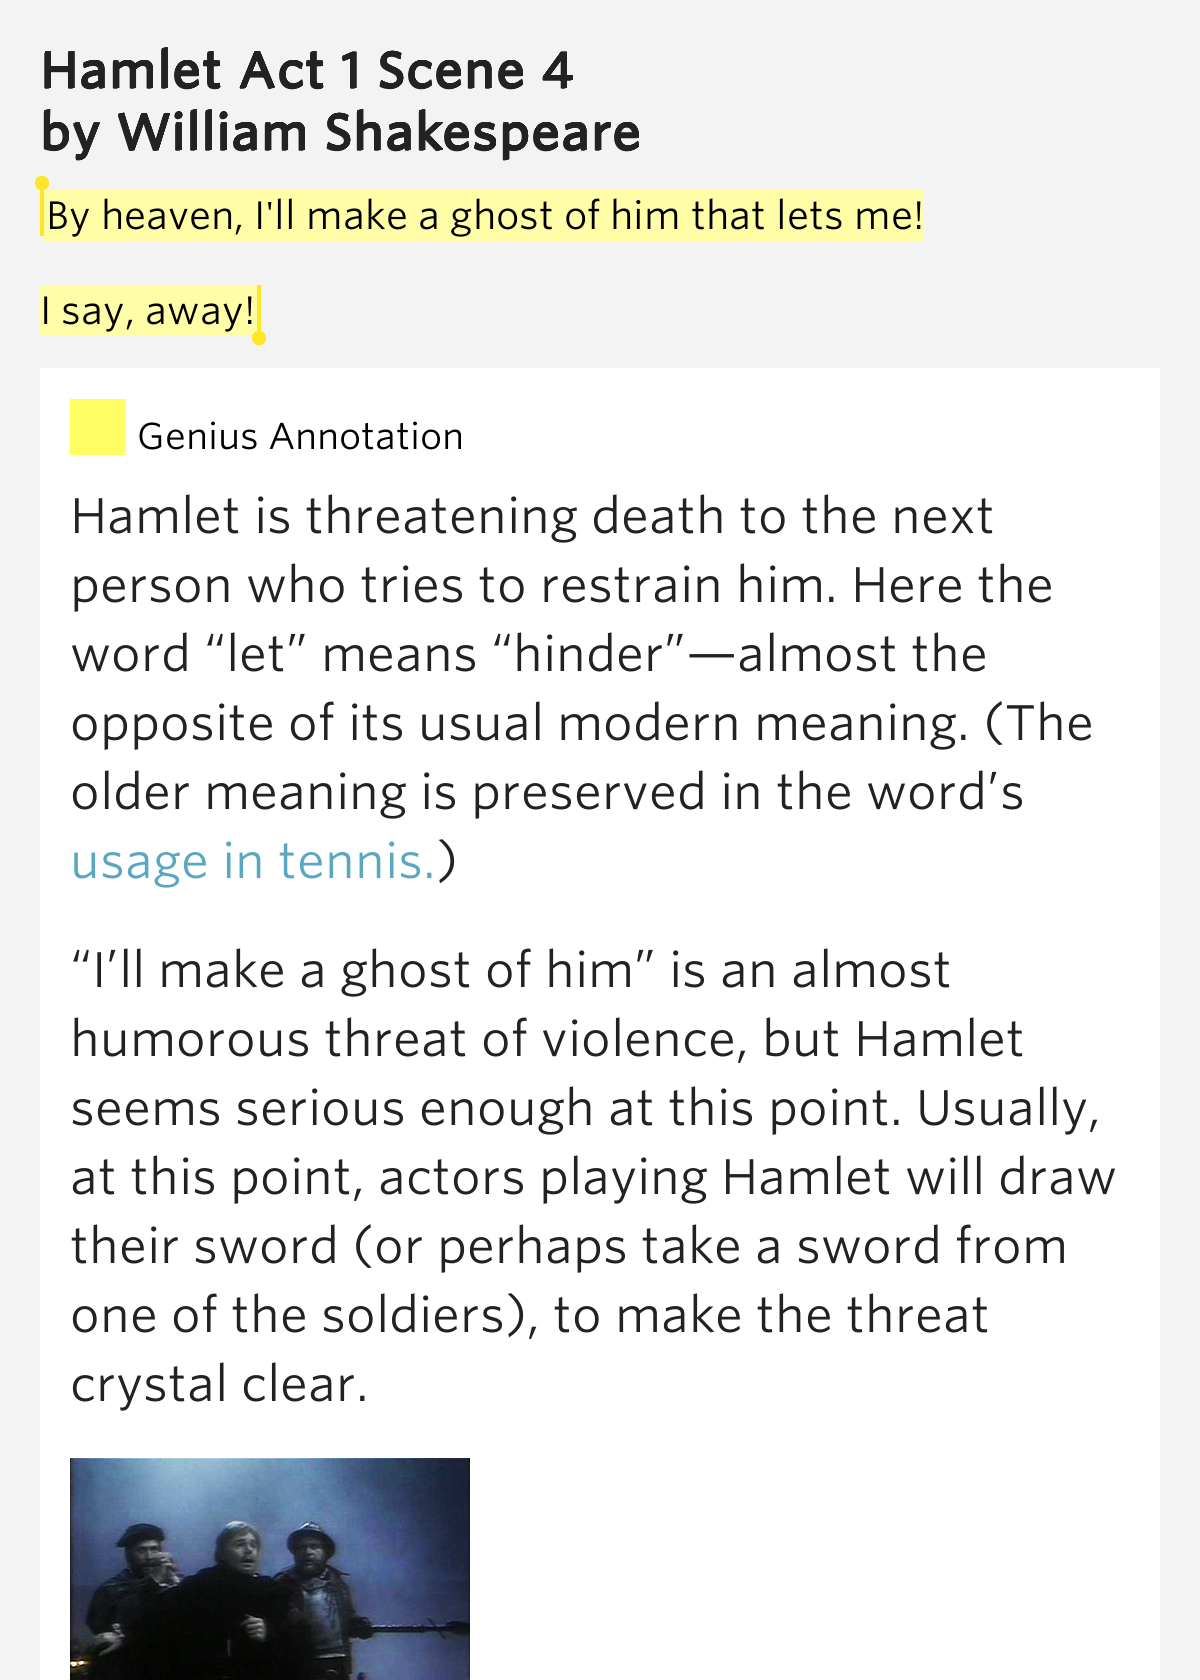 violence and death in hamlet by william shakespeare Possibly the first production of shakespeare's hamlet to be set in modern iran   that has been lost in a nation now ruled by intrigue, corruption, and violence   most jarring is what happens after the tragic death of hamlet's.